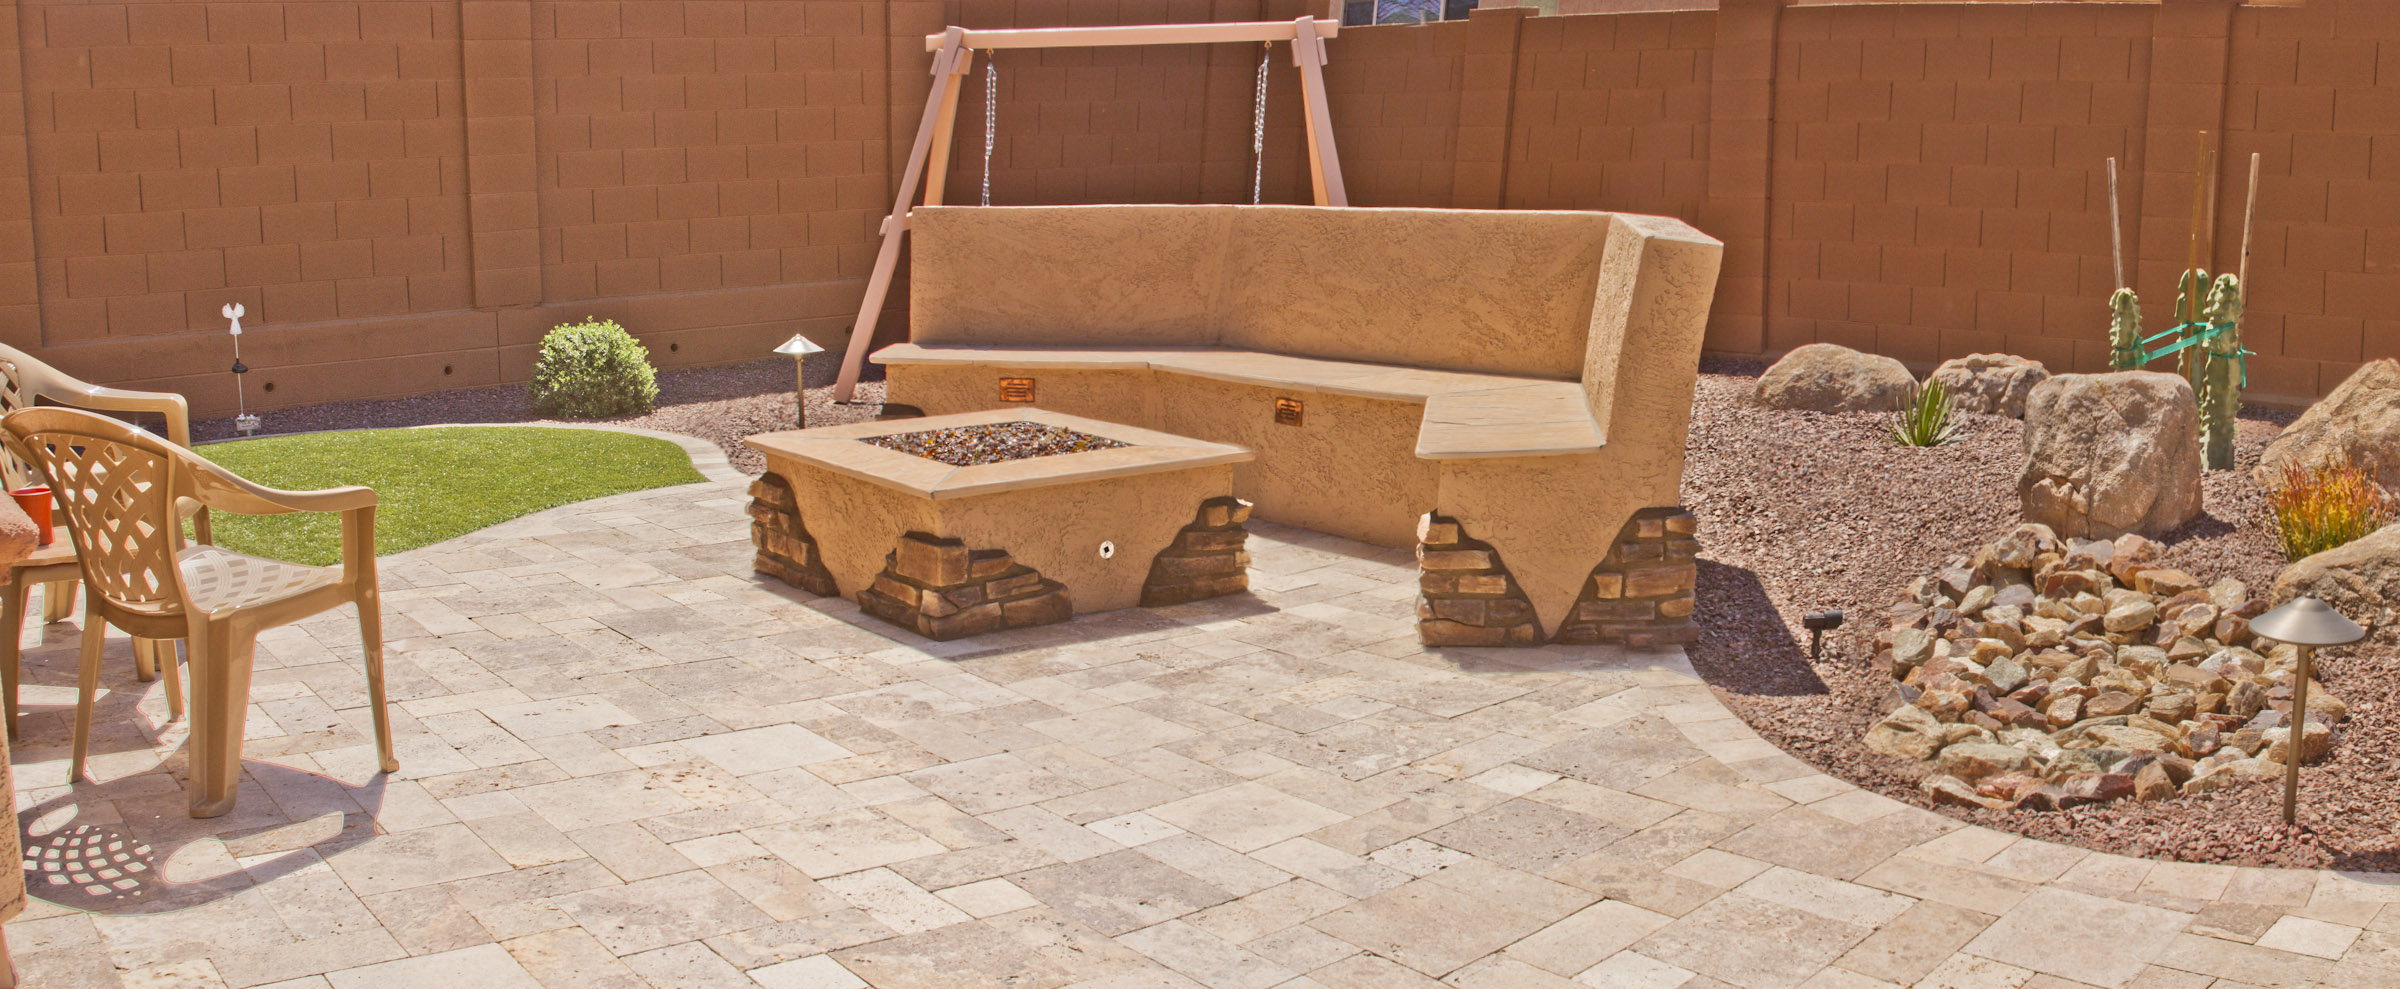 Seating Wall | Fire Pit